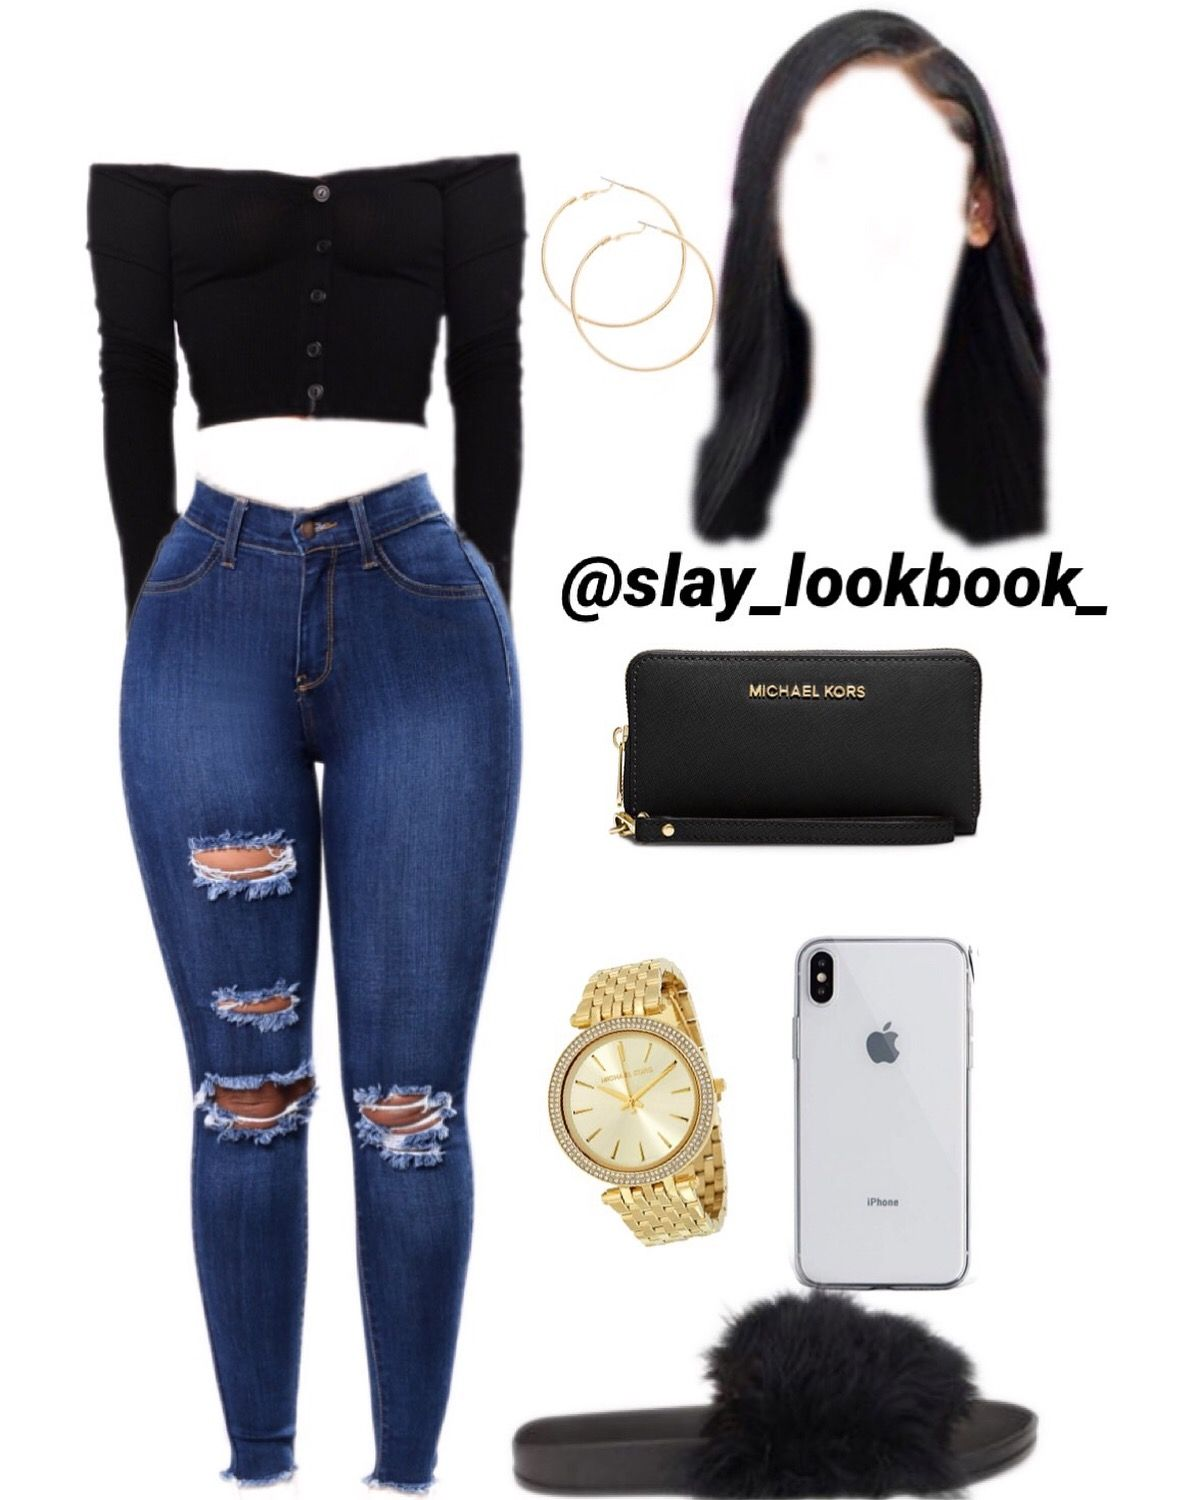 Follow my instagram page @slay_lookbook_ for more cute fits